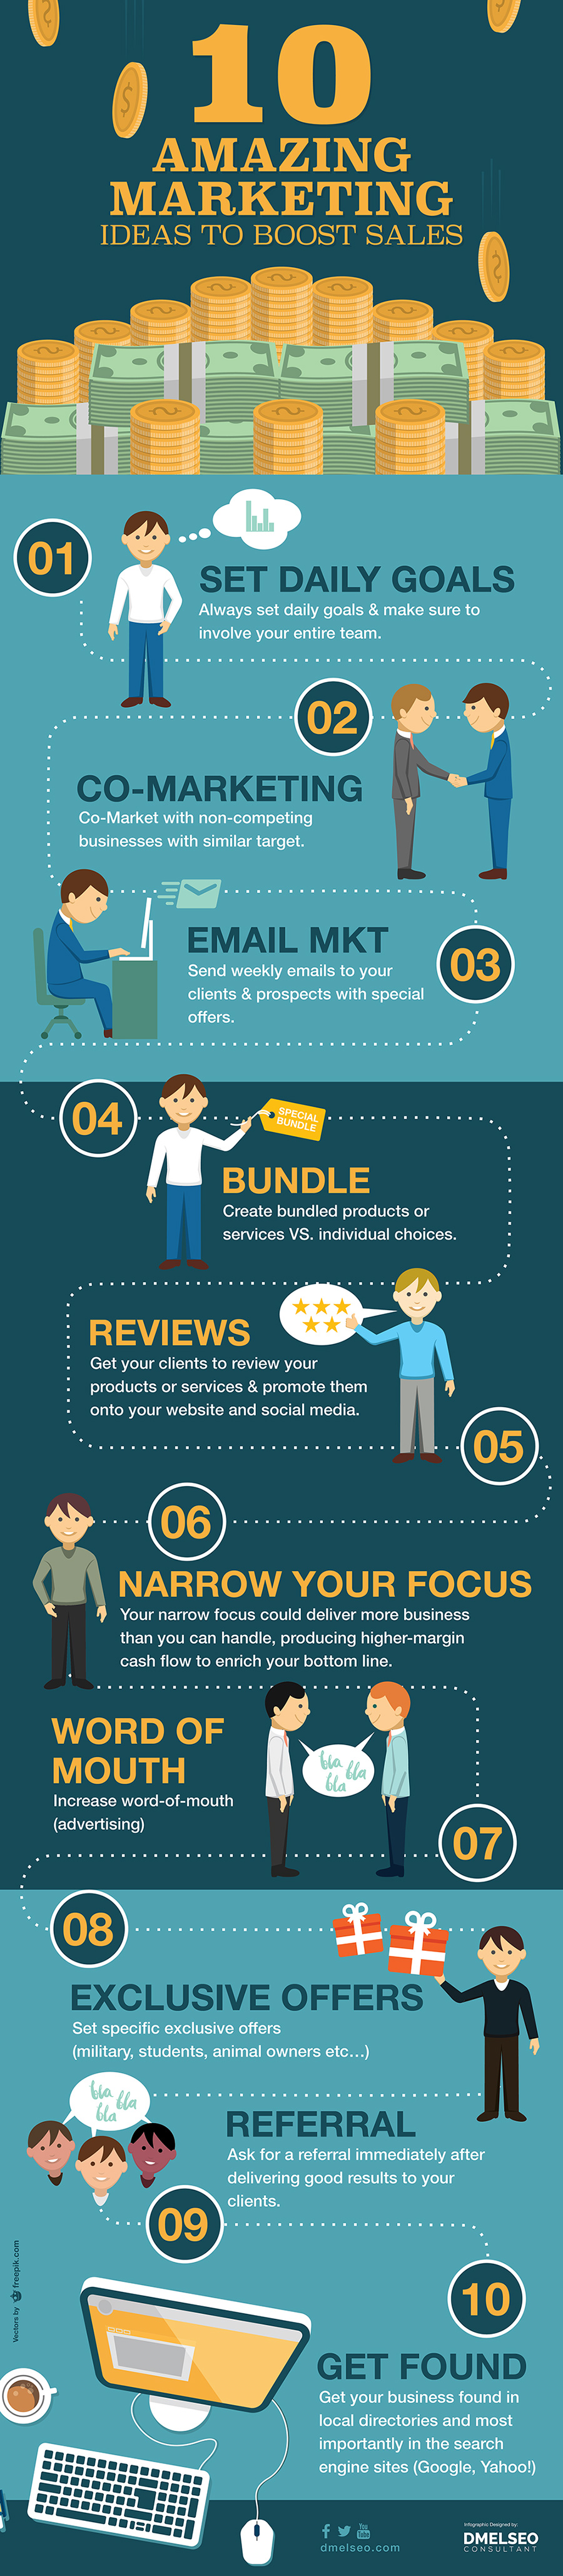 10 Amazing Marketing ideas to boost sales Infographic